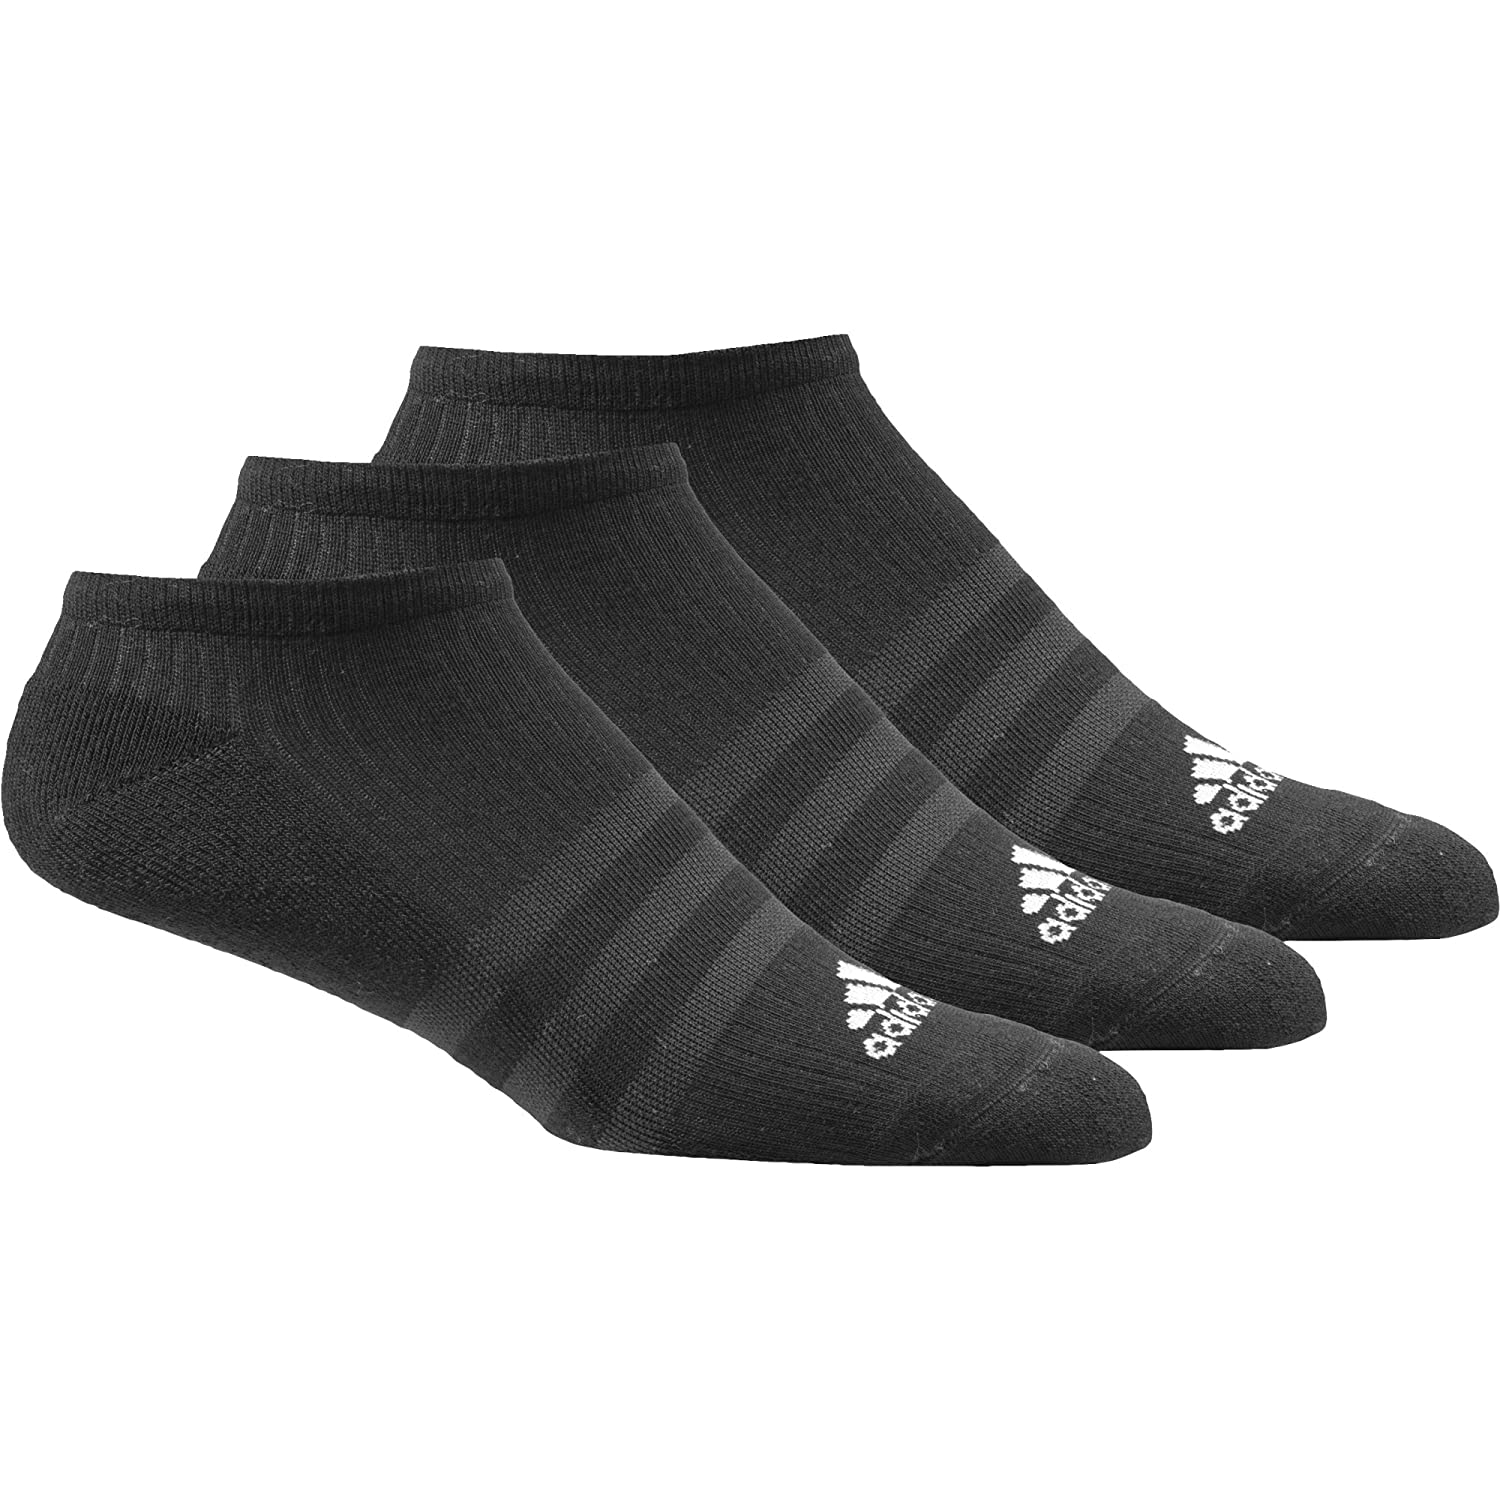 adidas S PER N S HCP Calcetines Unisex Pack of